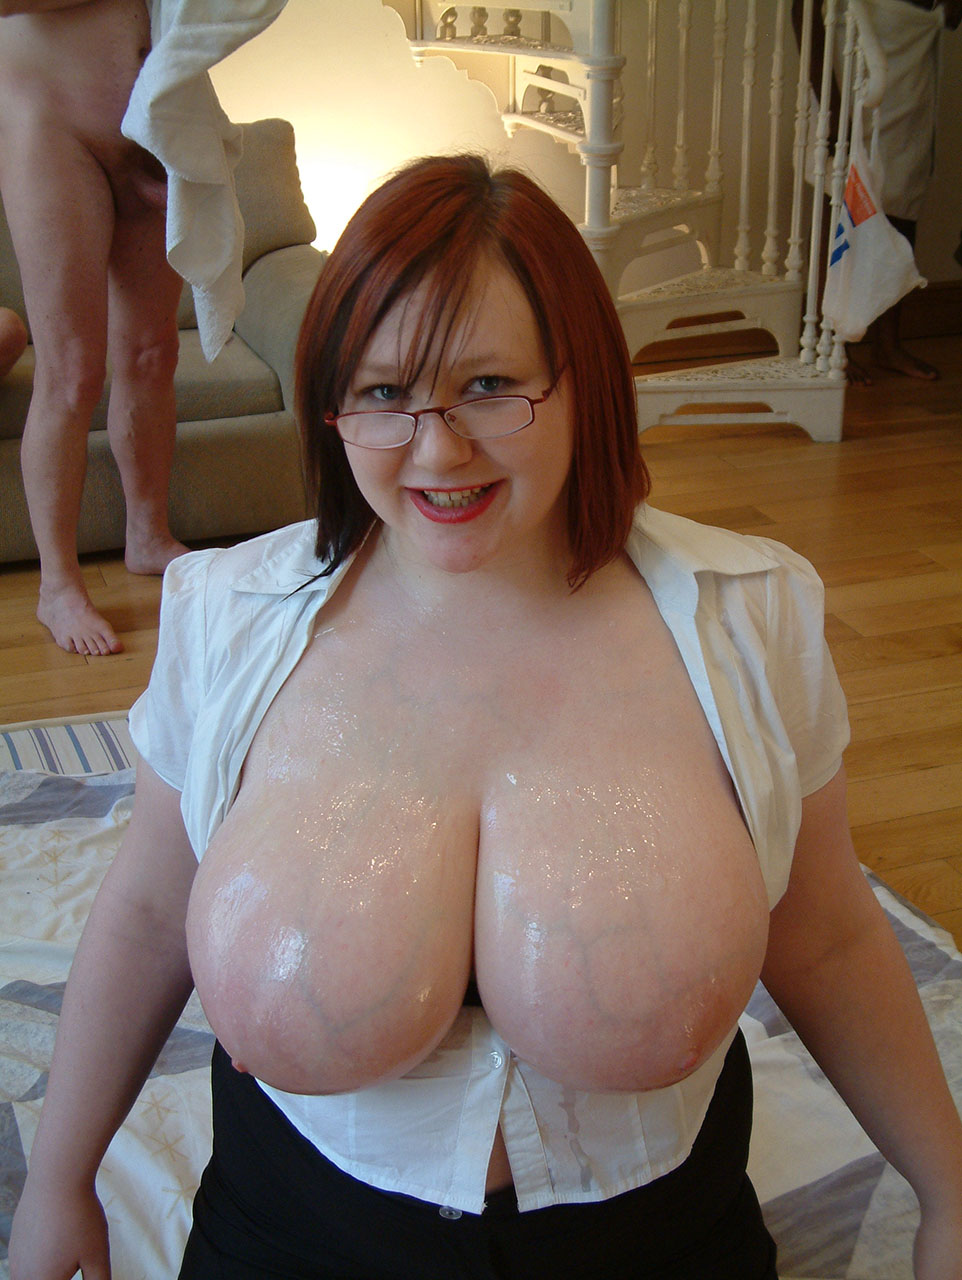 Too happens:) Busty english women